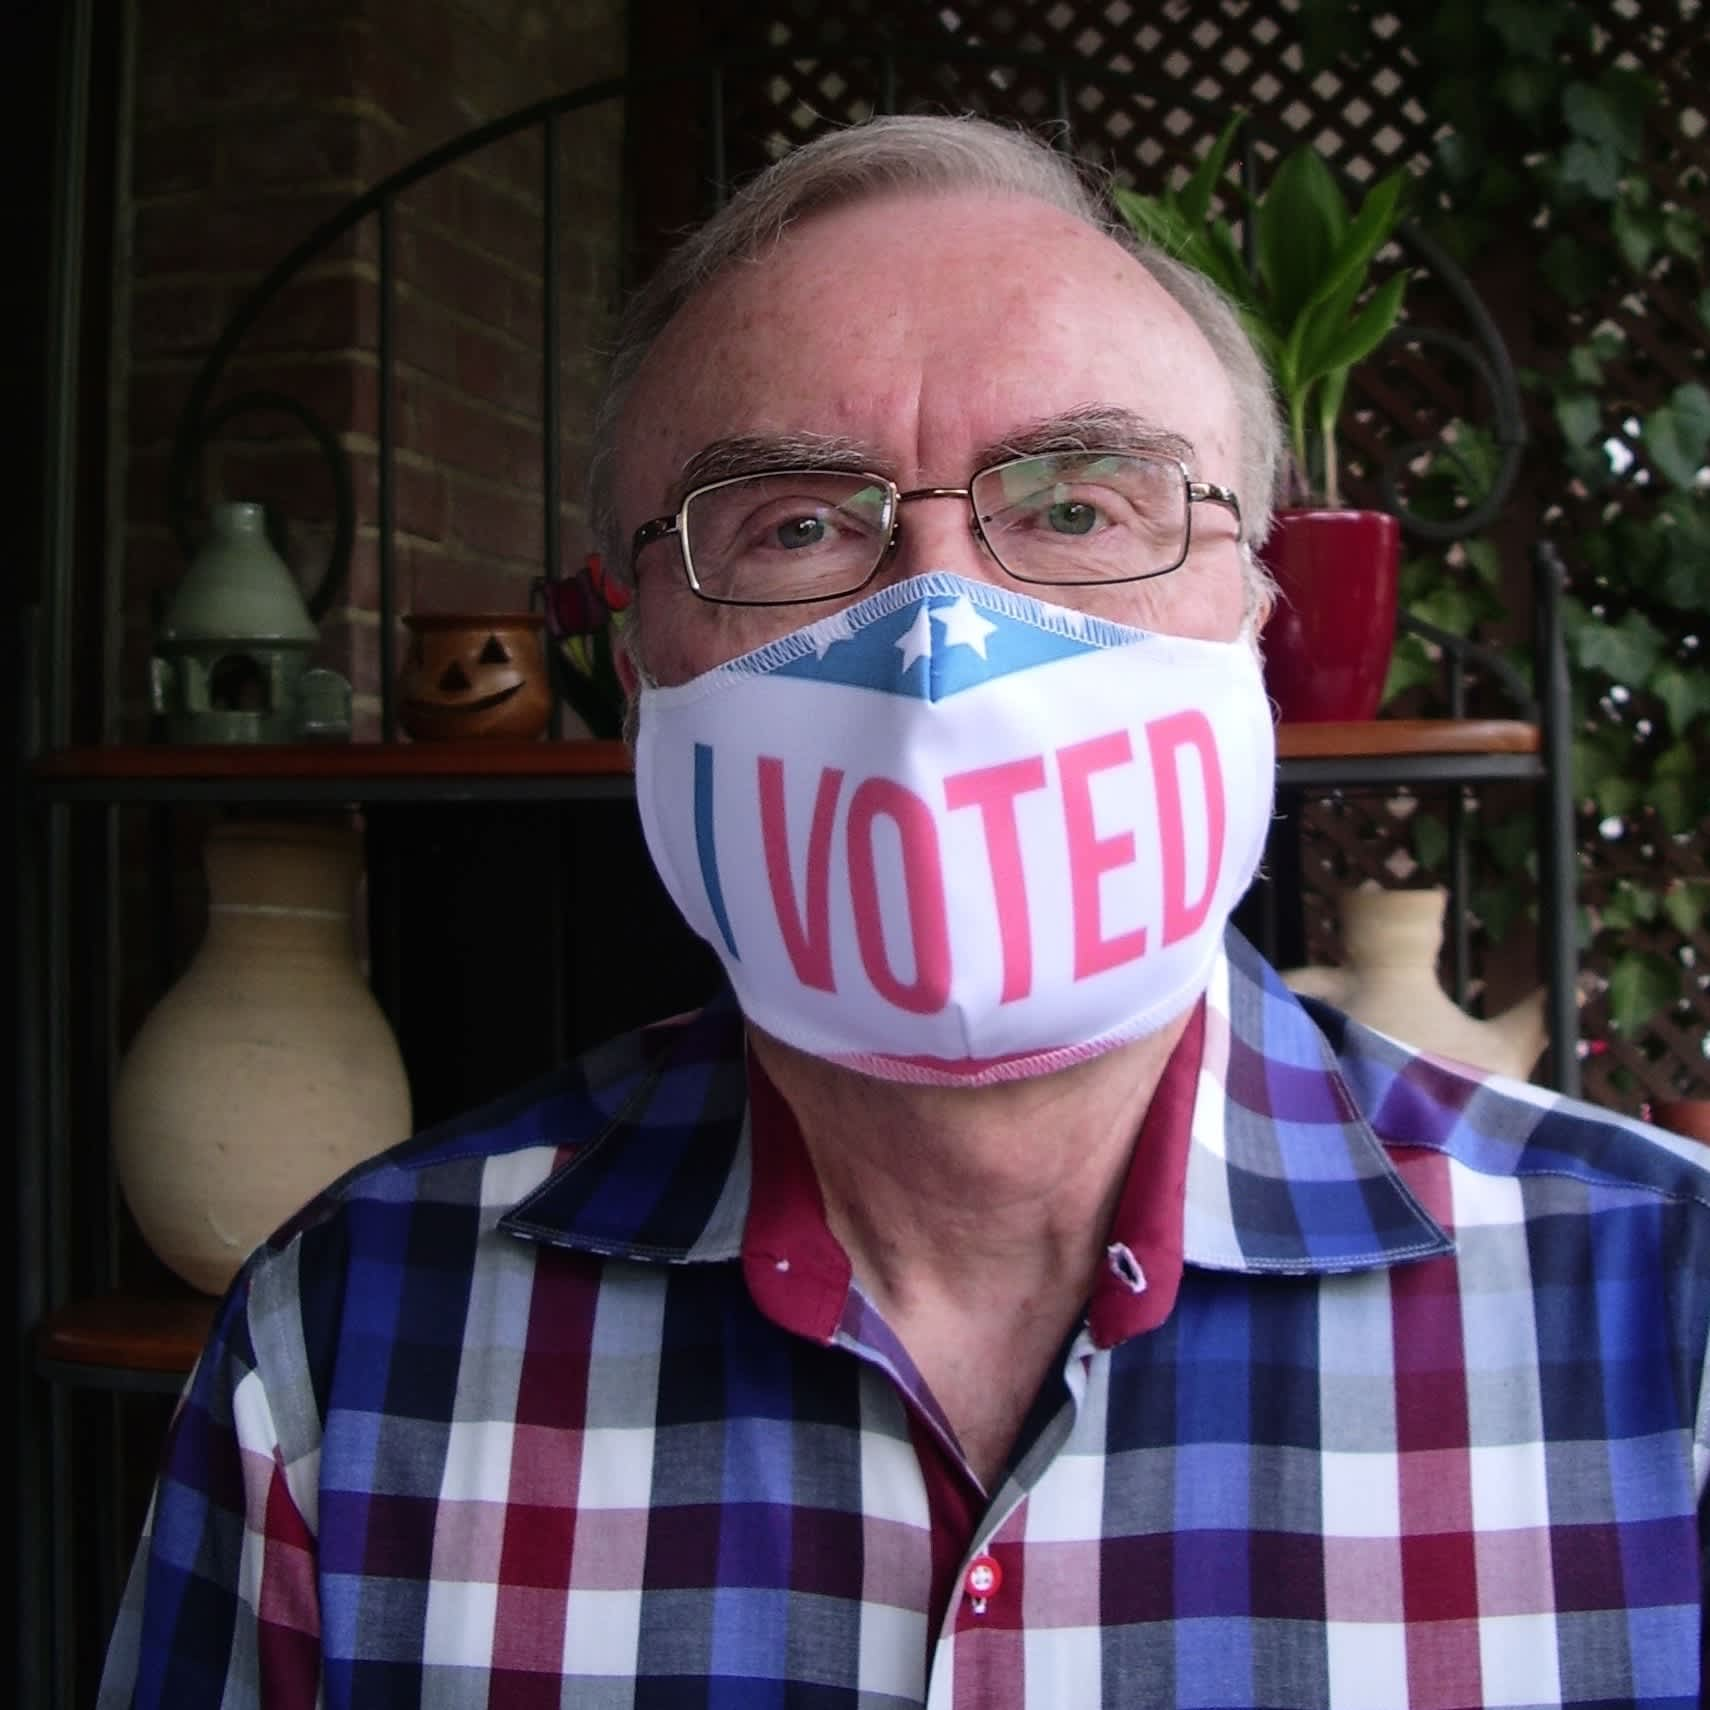 Gerald Loftus with his I Voted face mask